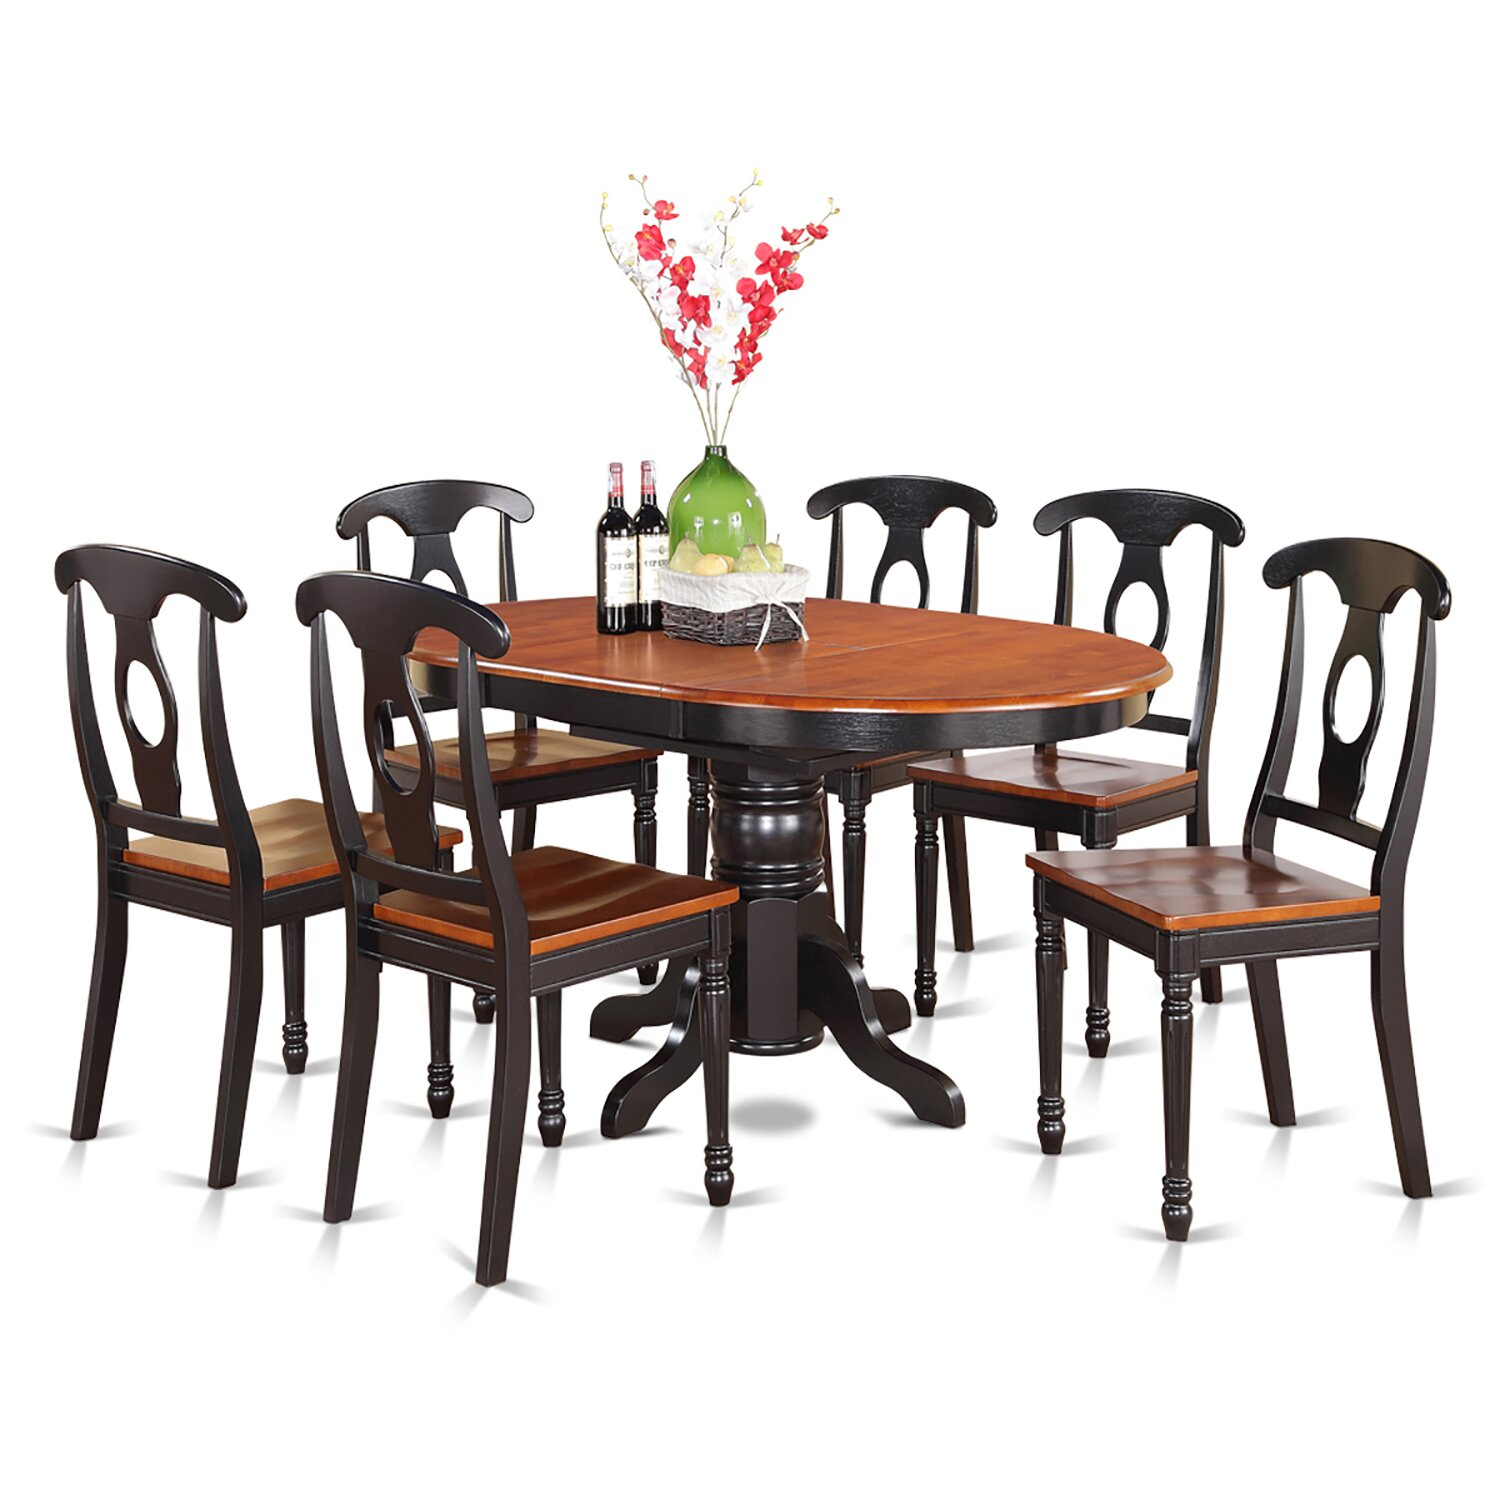 Piece Dining Table Set Oval Dining Table And 6 Dining Chairs KENL7 W